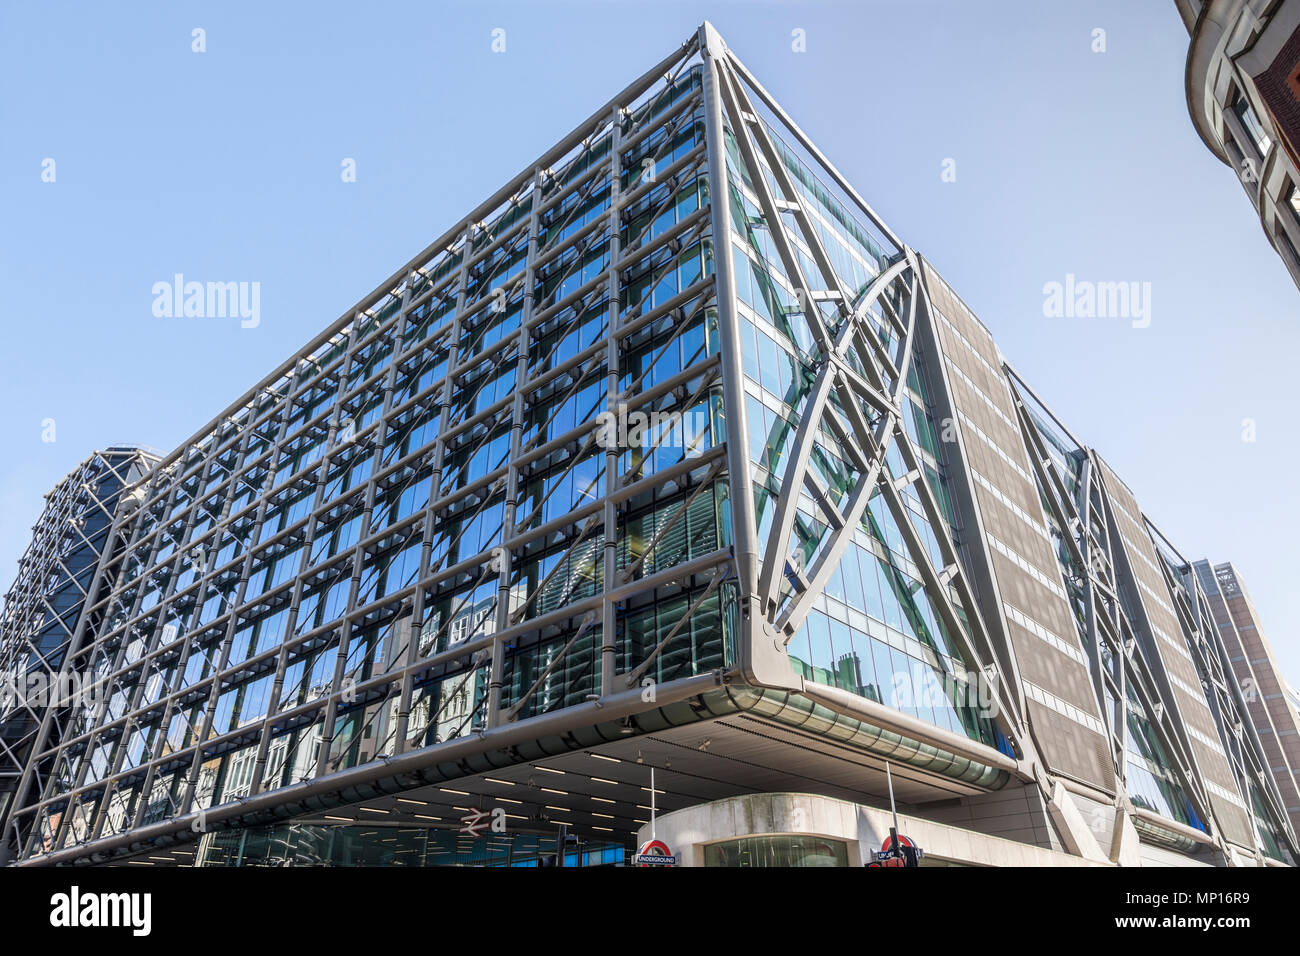 Cannon Place building on Cannon Street in London - Stock Image